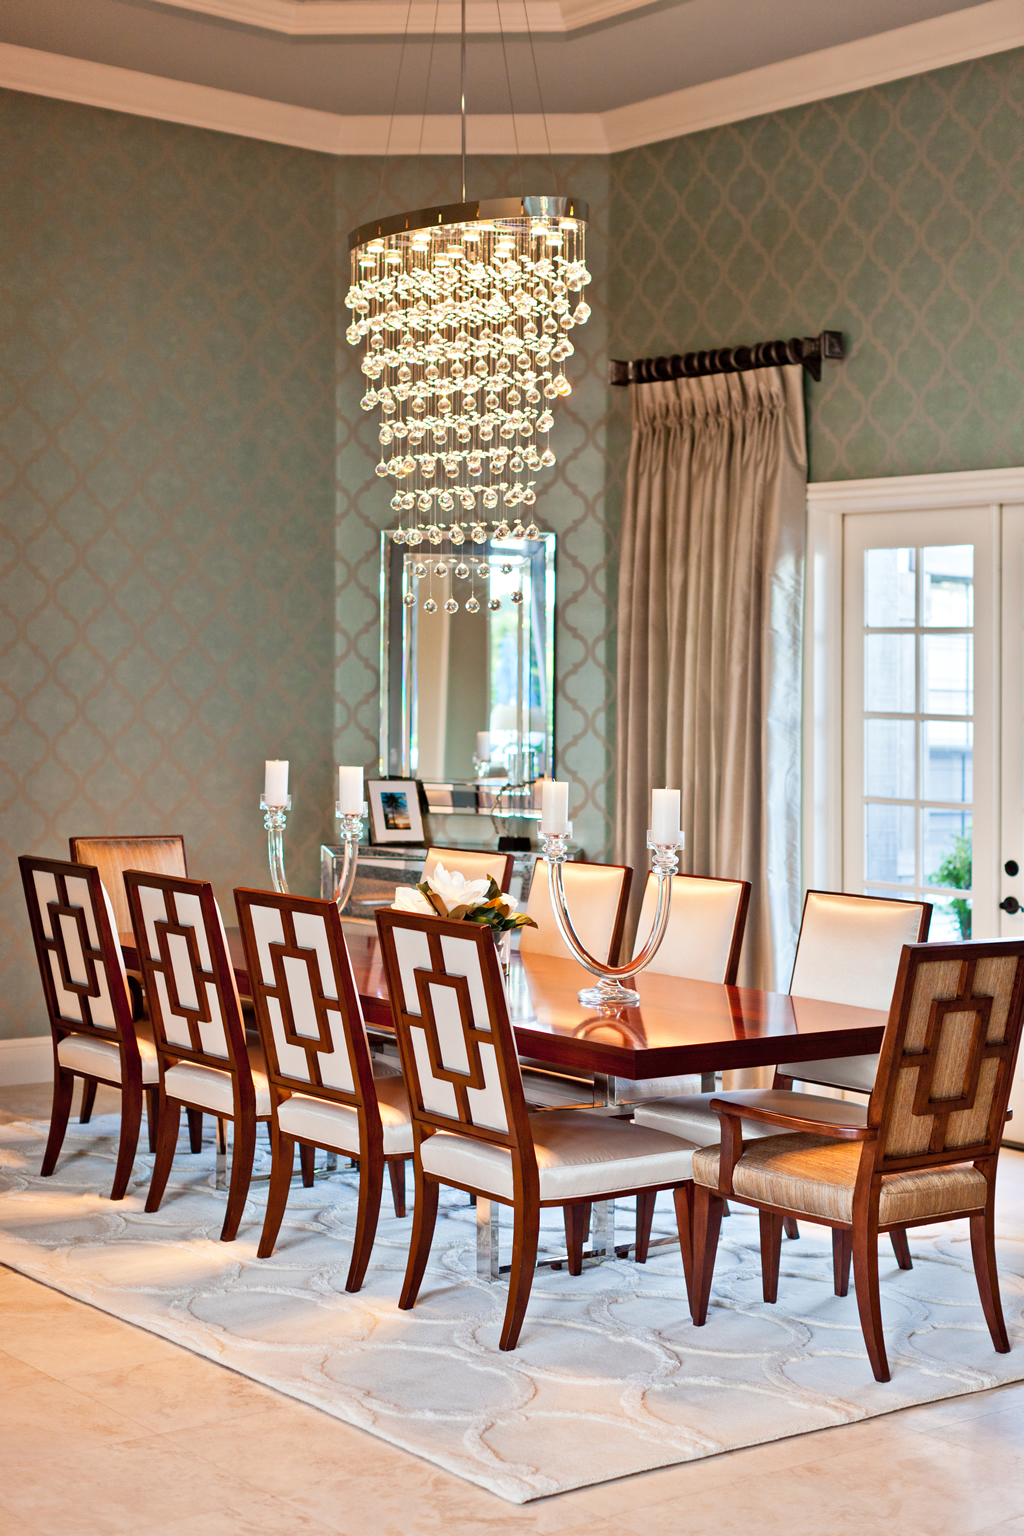 Chandelier above formal dining table and chairs